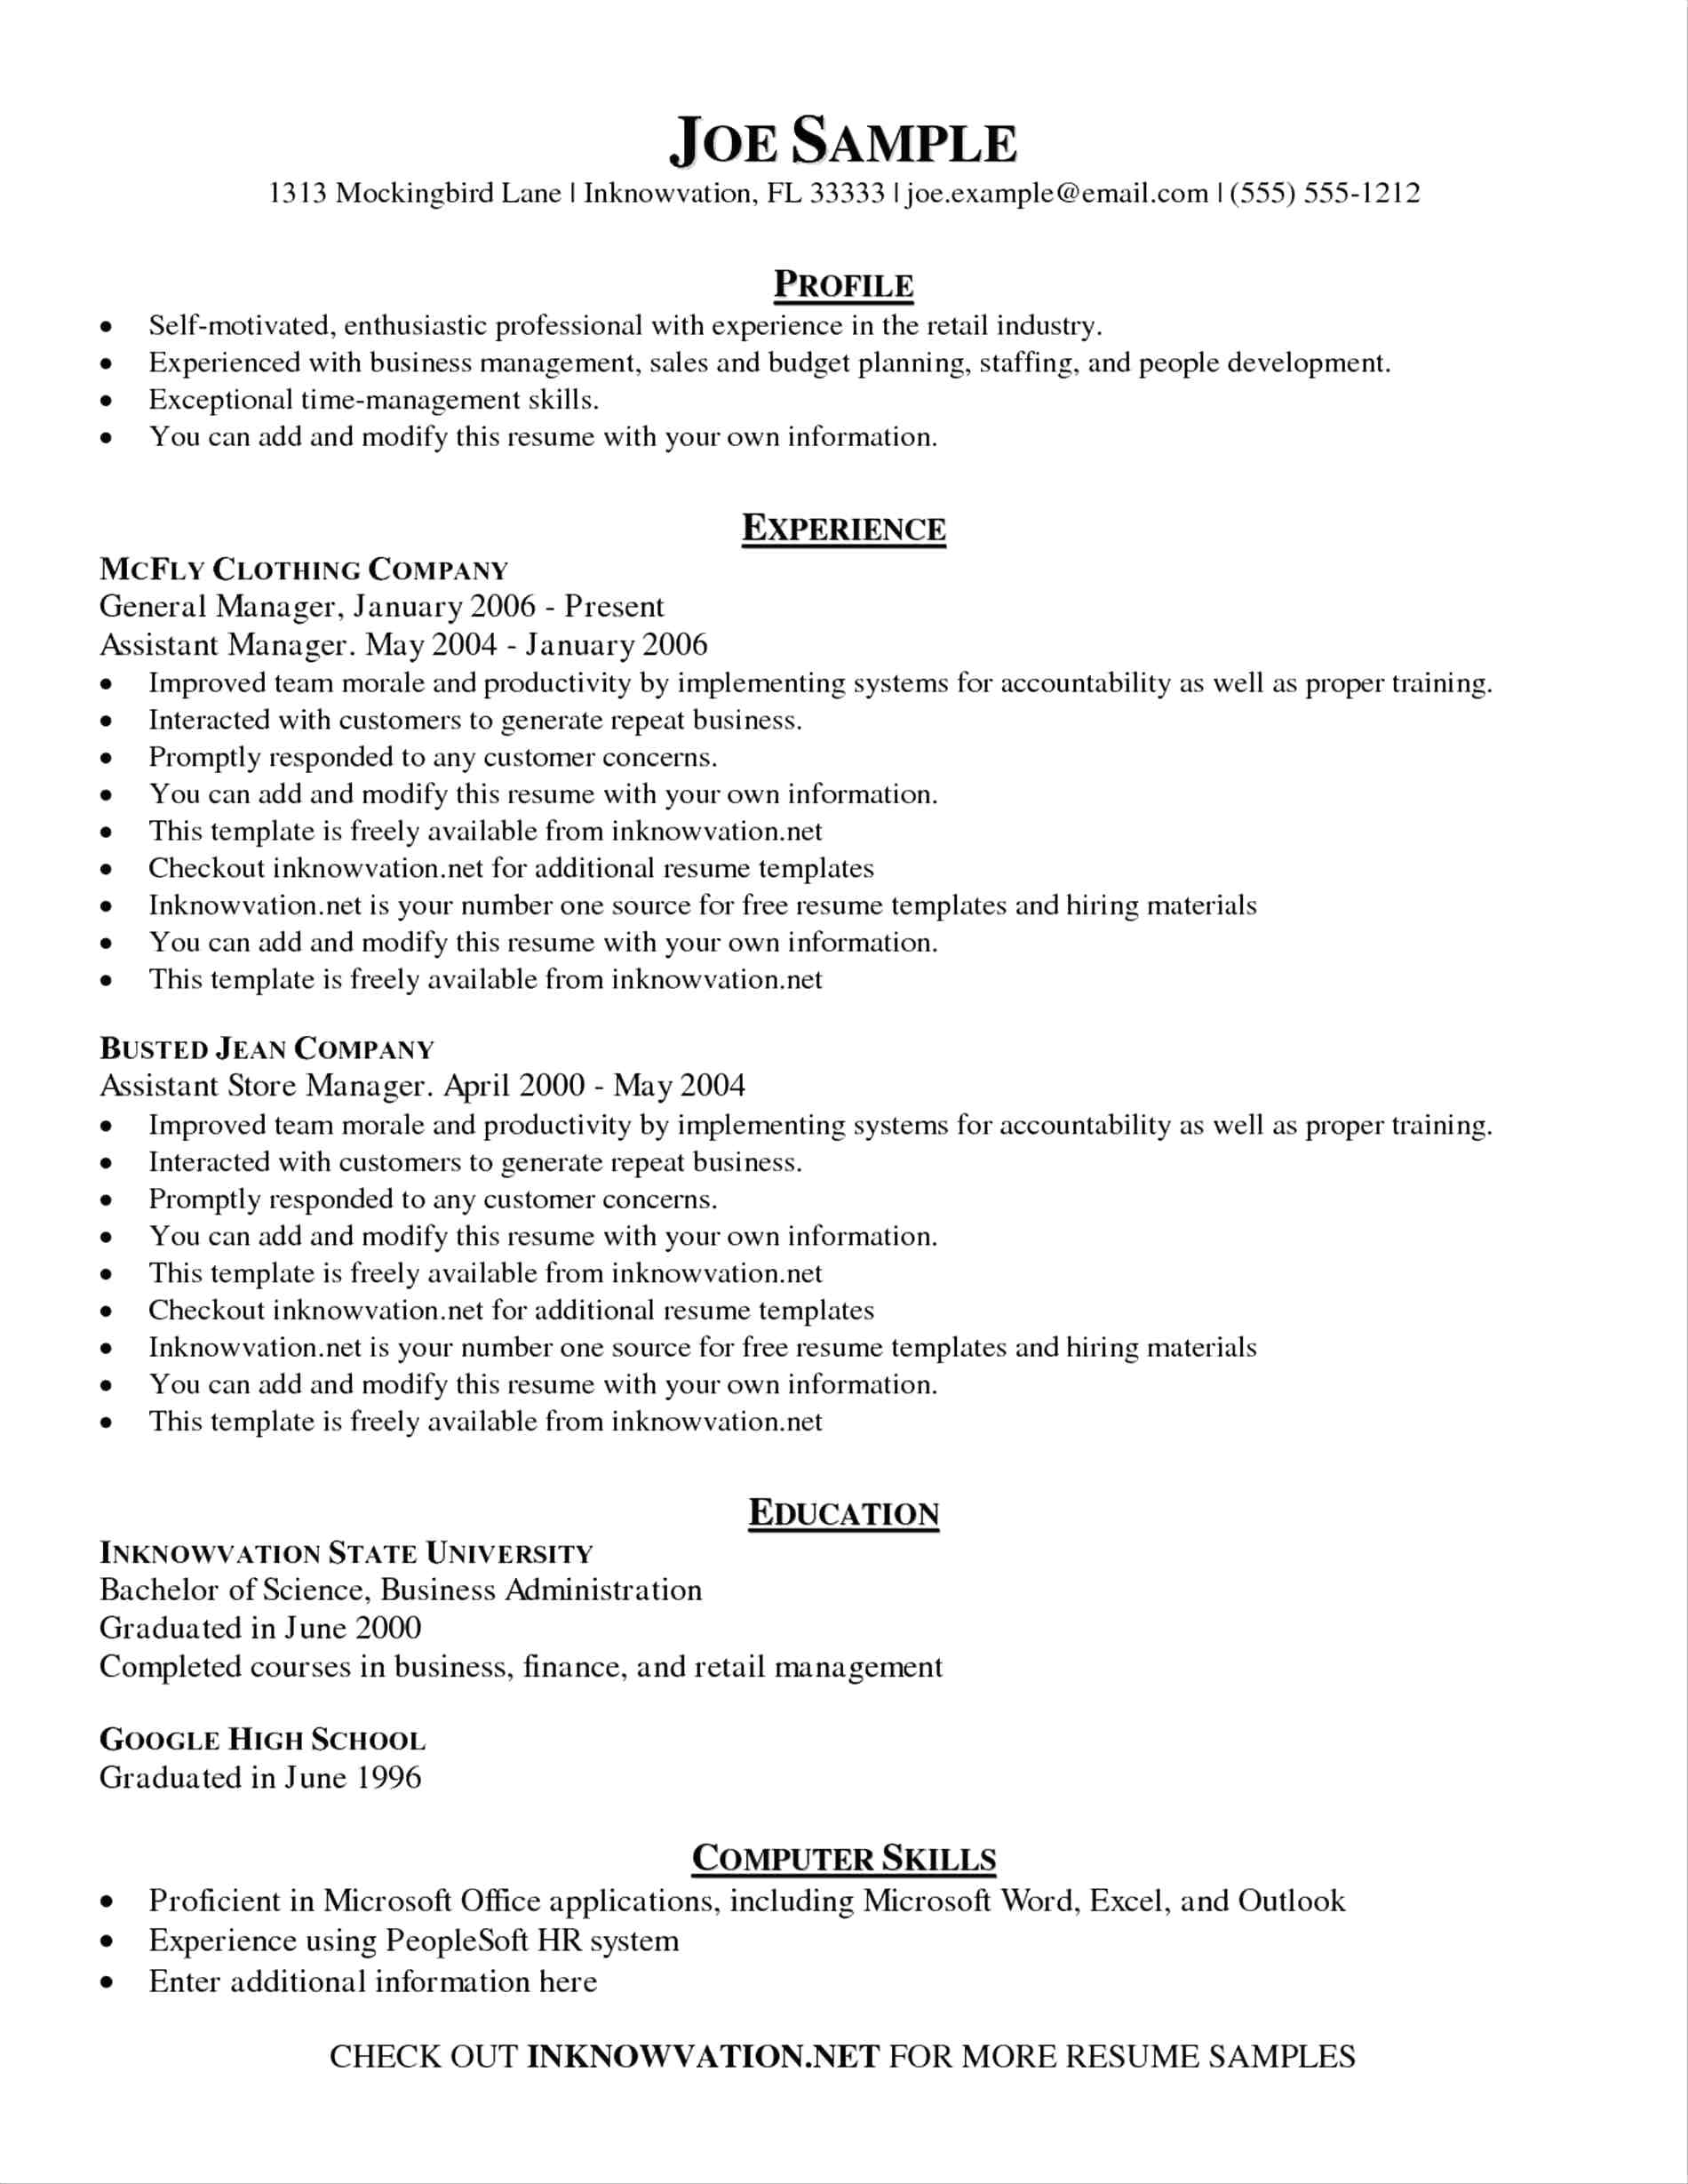 Tableau Fresher Resume - Tableau Resume In Examples Resumes for 3 Years Experience